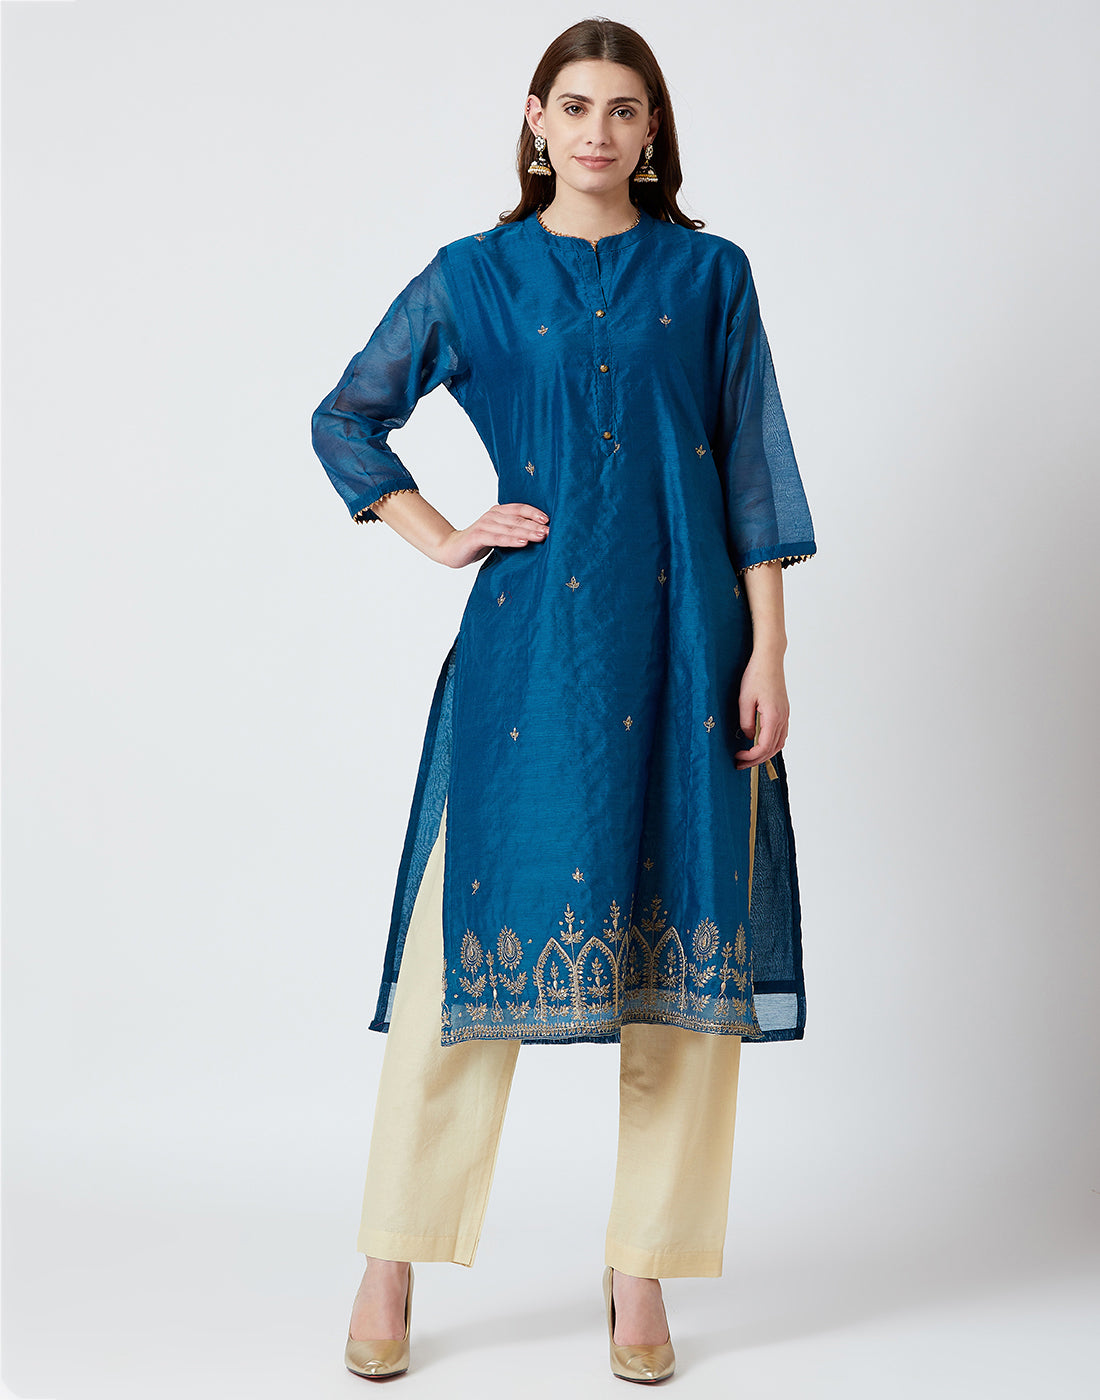 Blue Cotton Chanderi Salwar Kameez